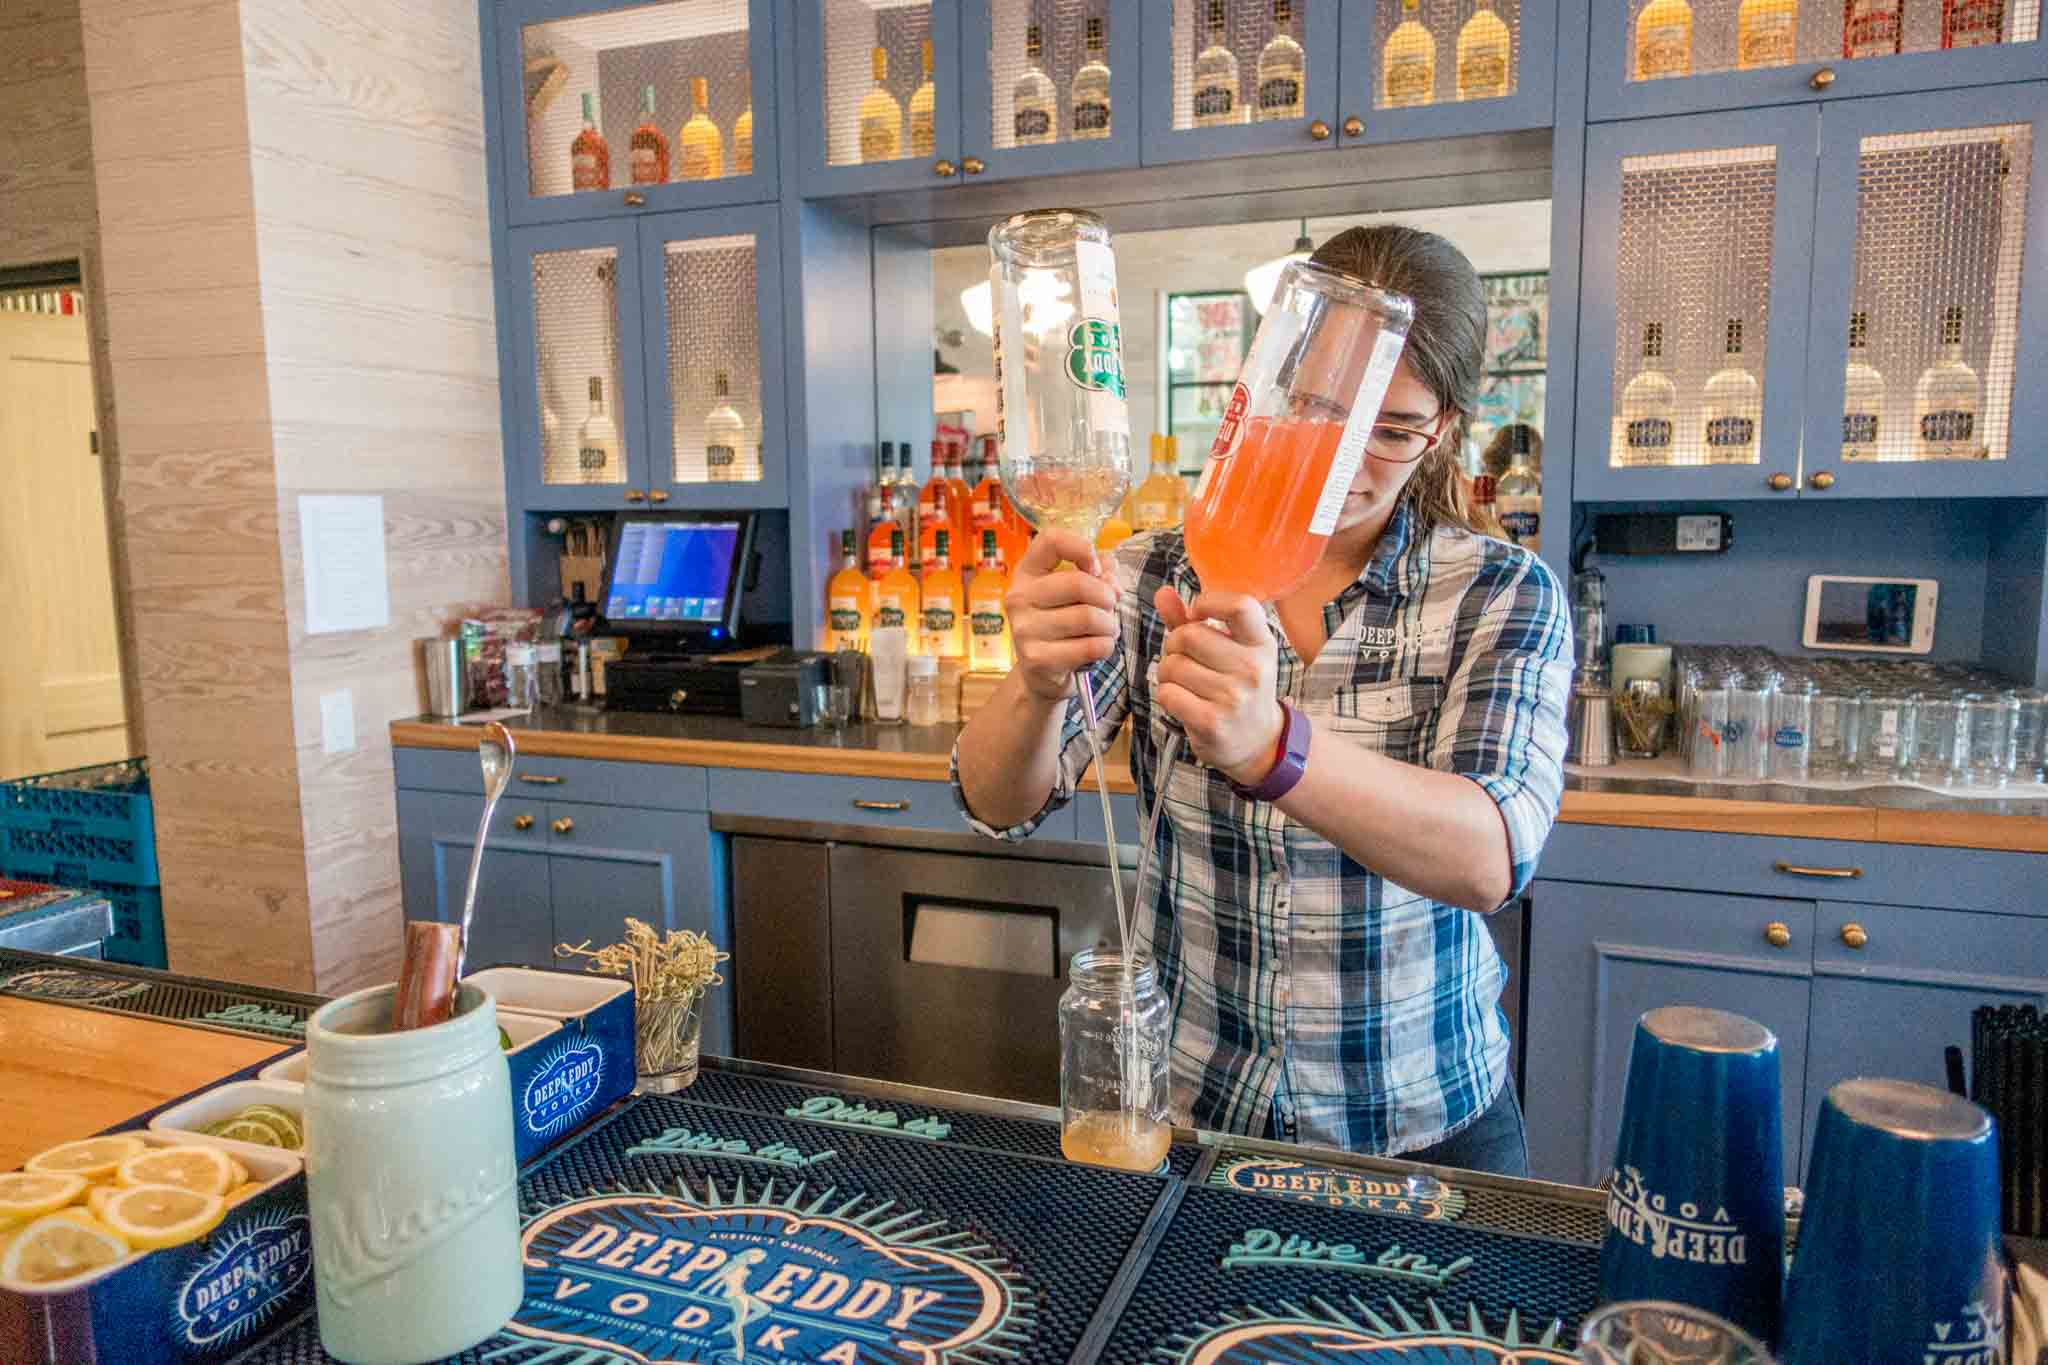 Bartender making a cocktail the bar